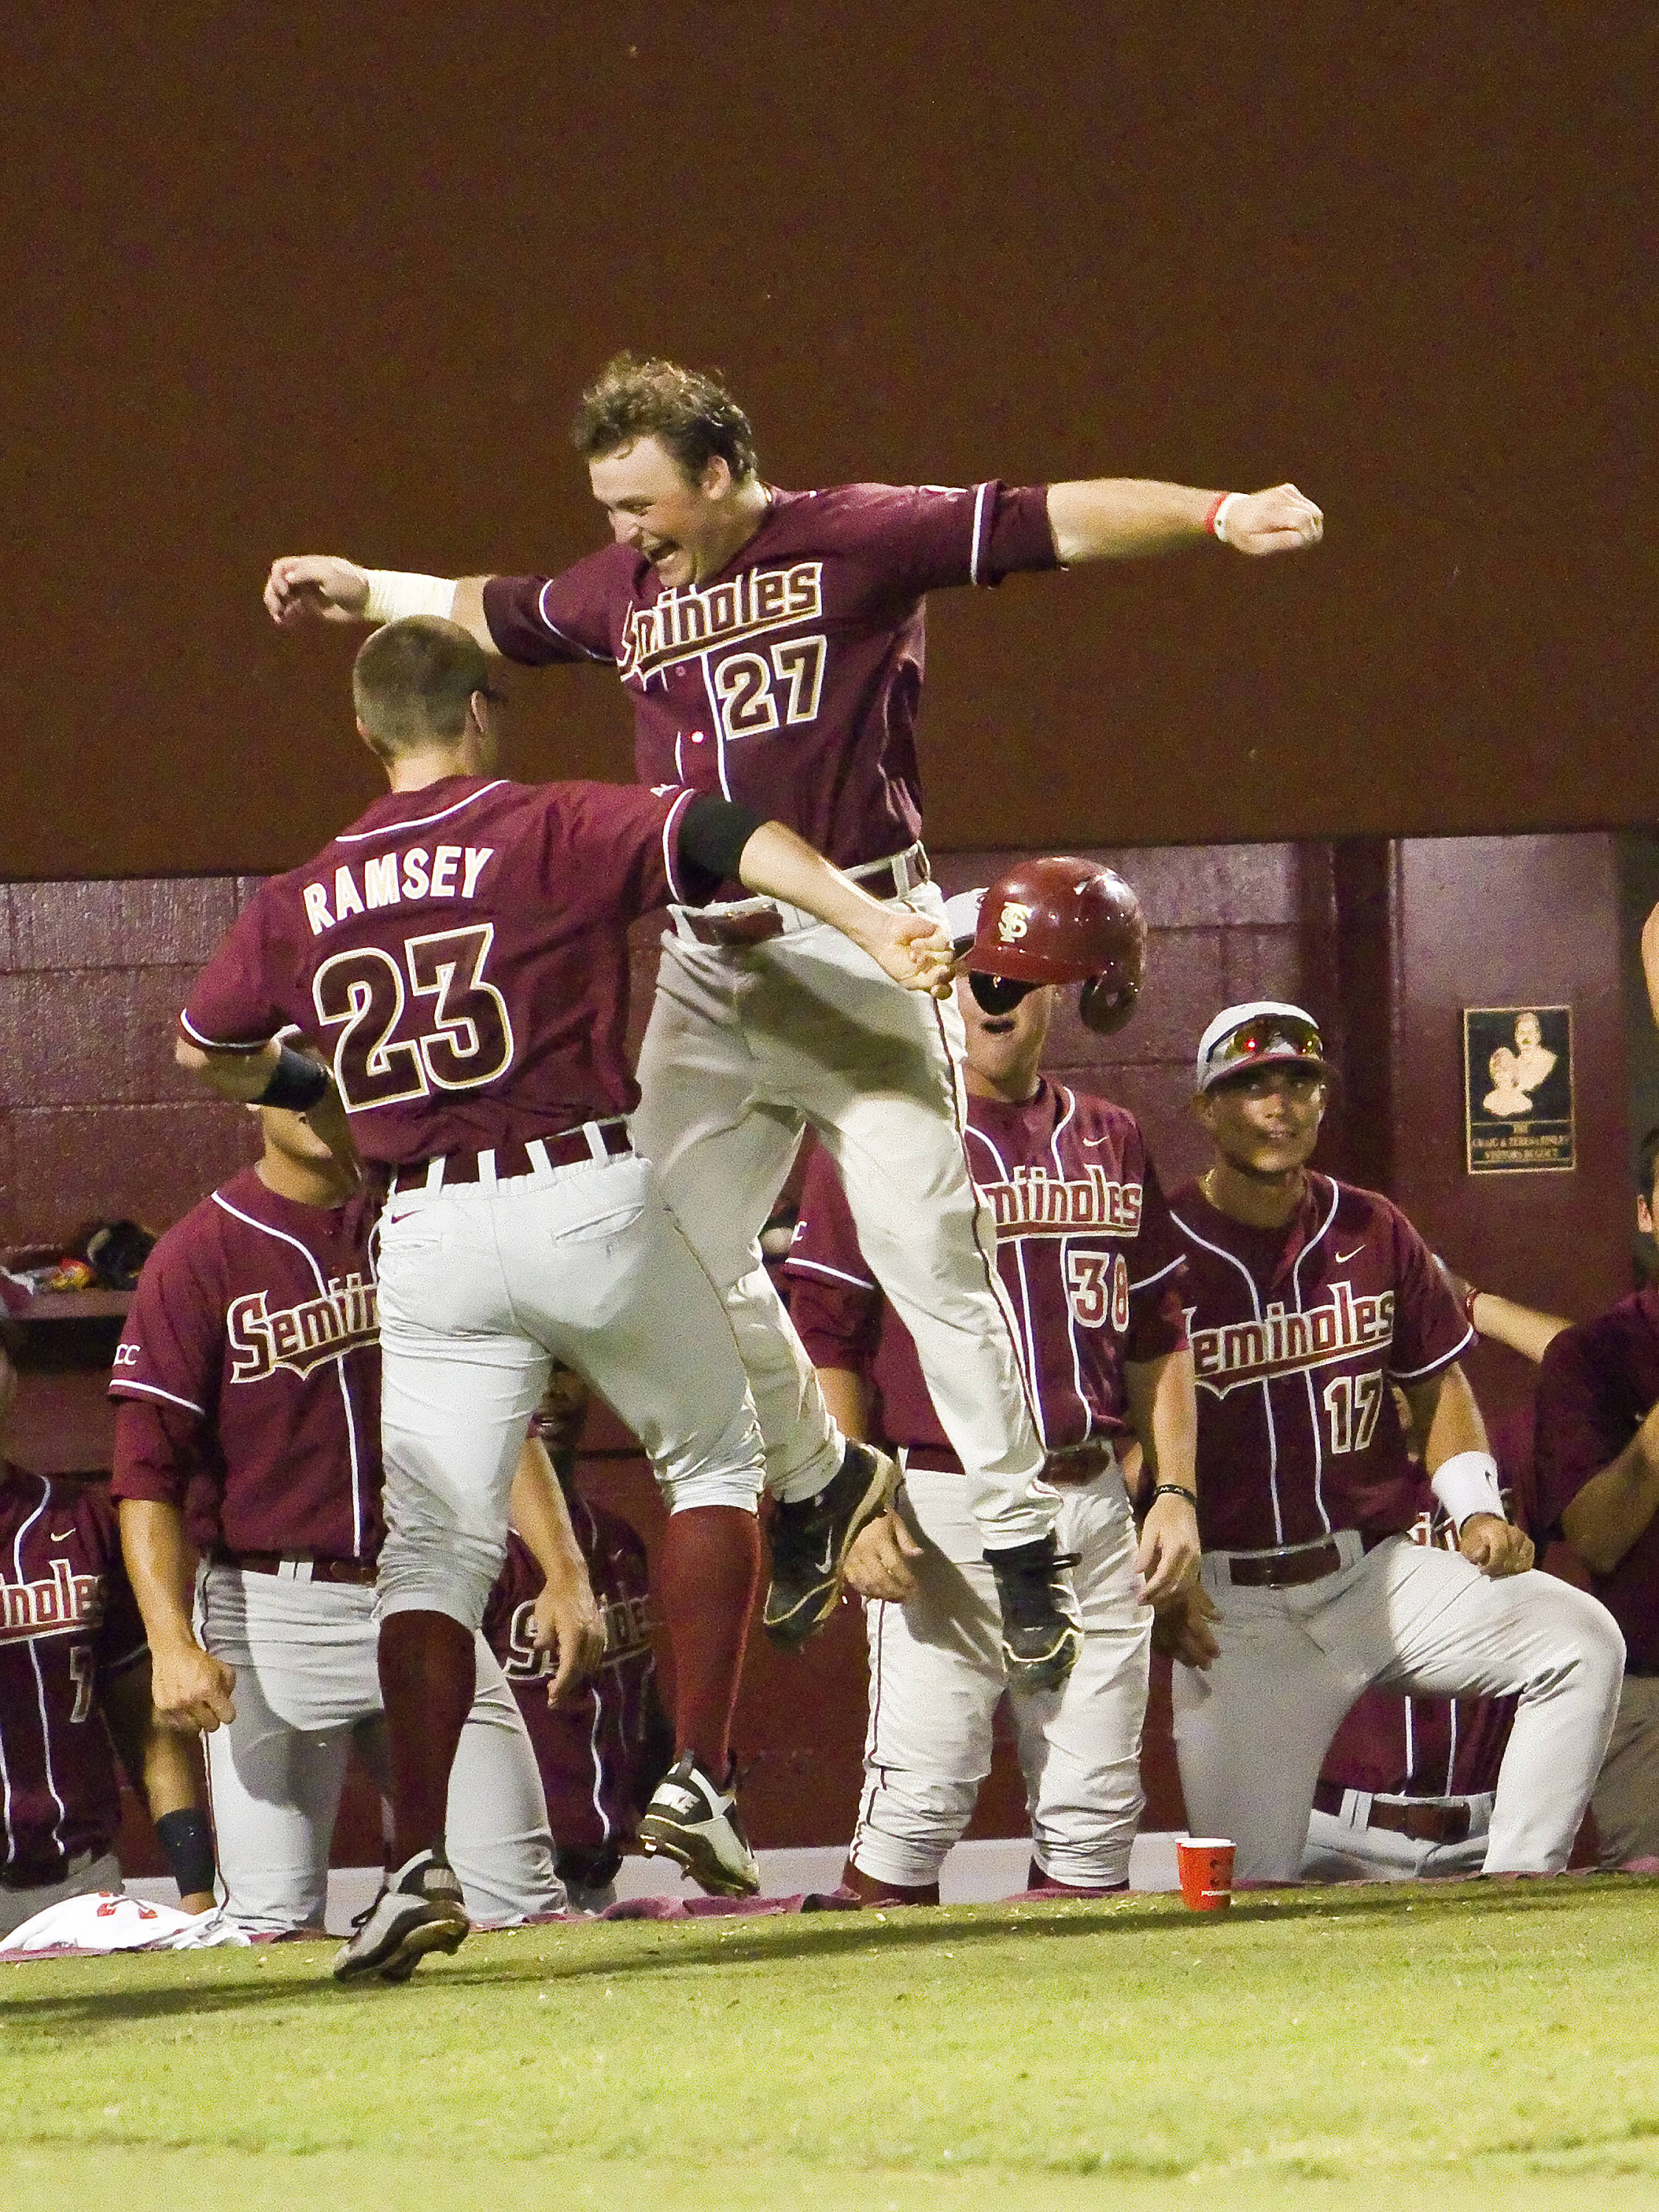 Outfielder Stuart Tapley (27) celebrating James Ramsey's (23) two run single in the 6th inning